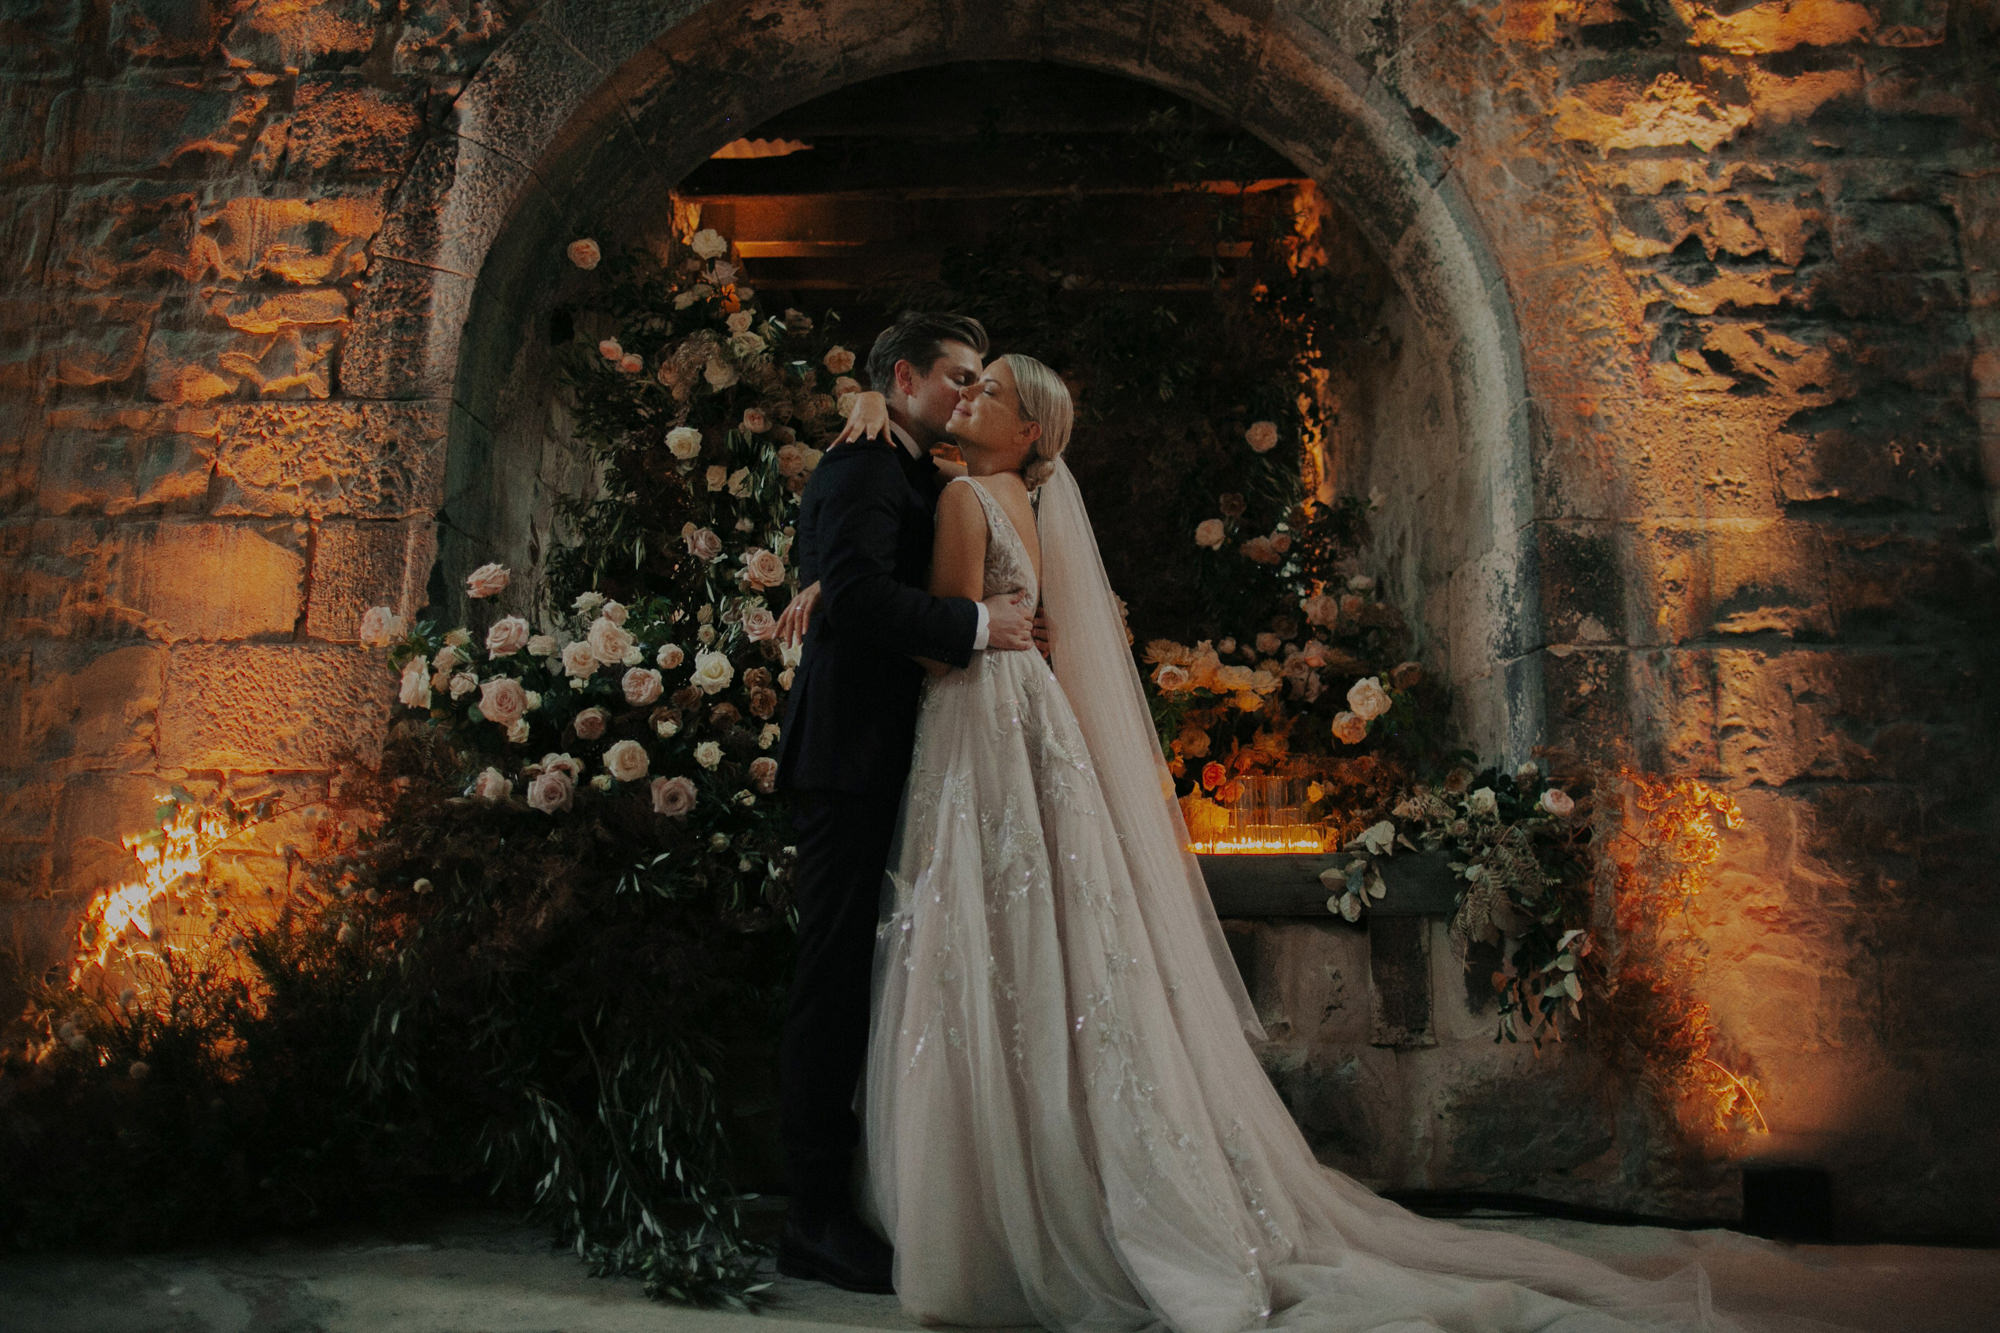 Bride and groom embrace in front of floral arch  - photo by Dan O'Day